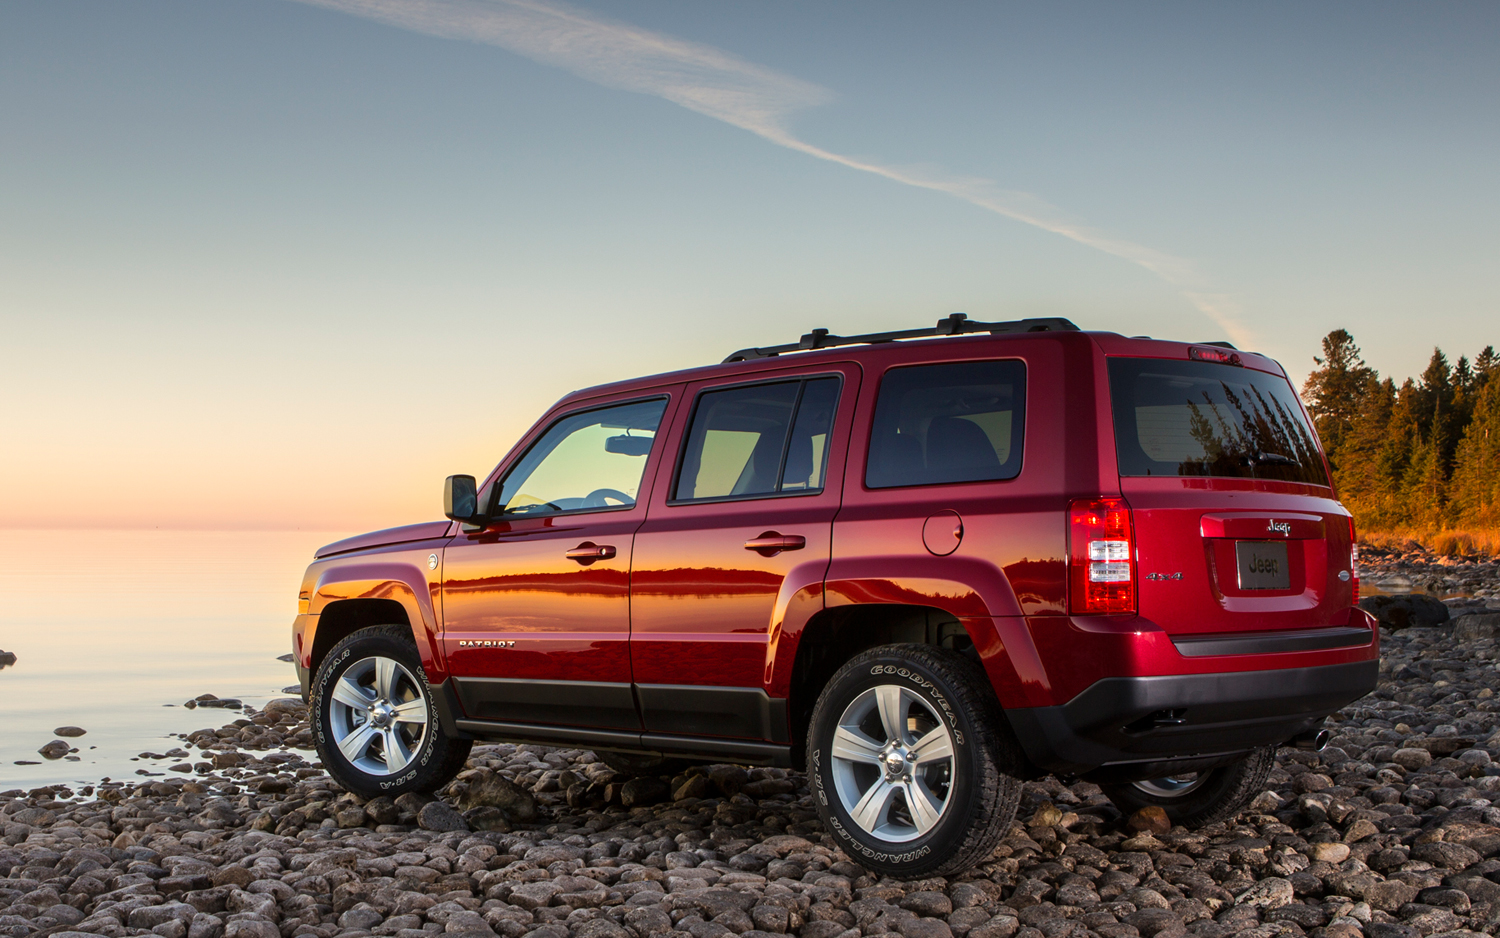 2014 jeep patriot. Black Bedroom Furniture Sets. Home Design Ideas